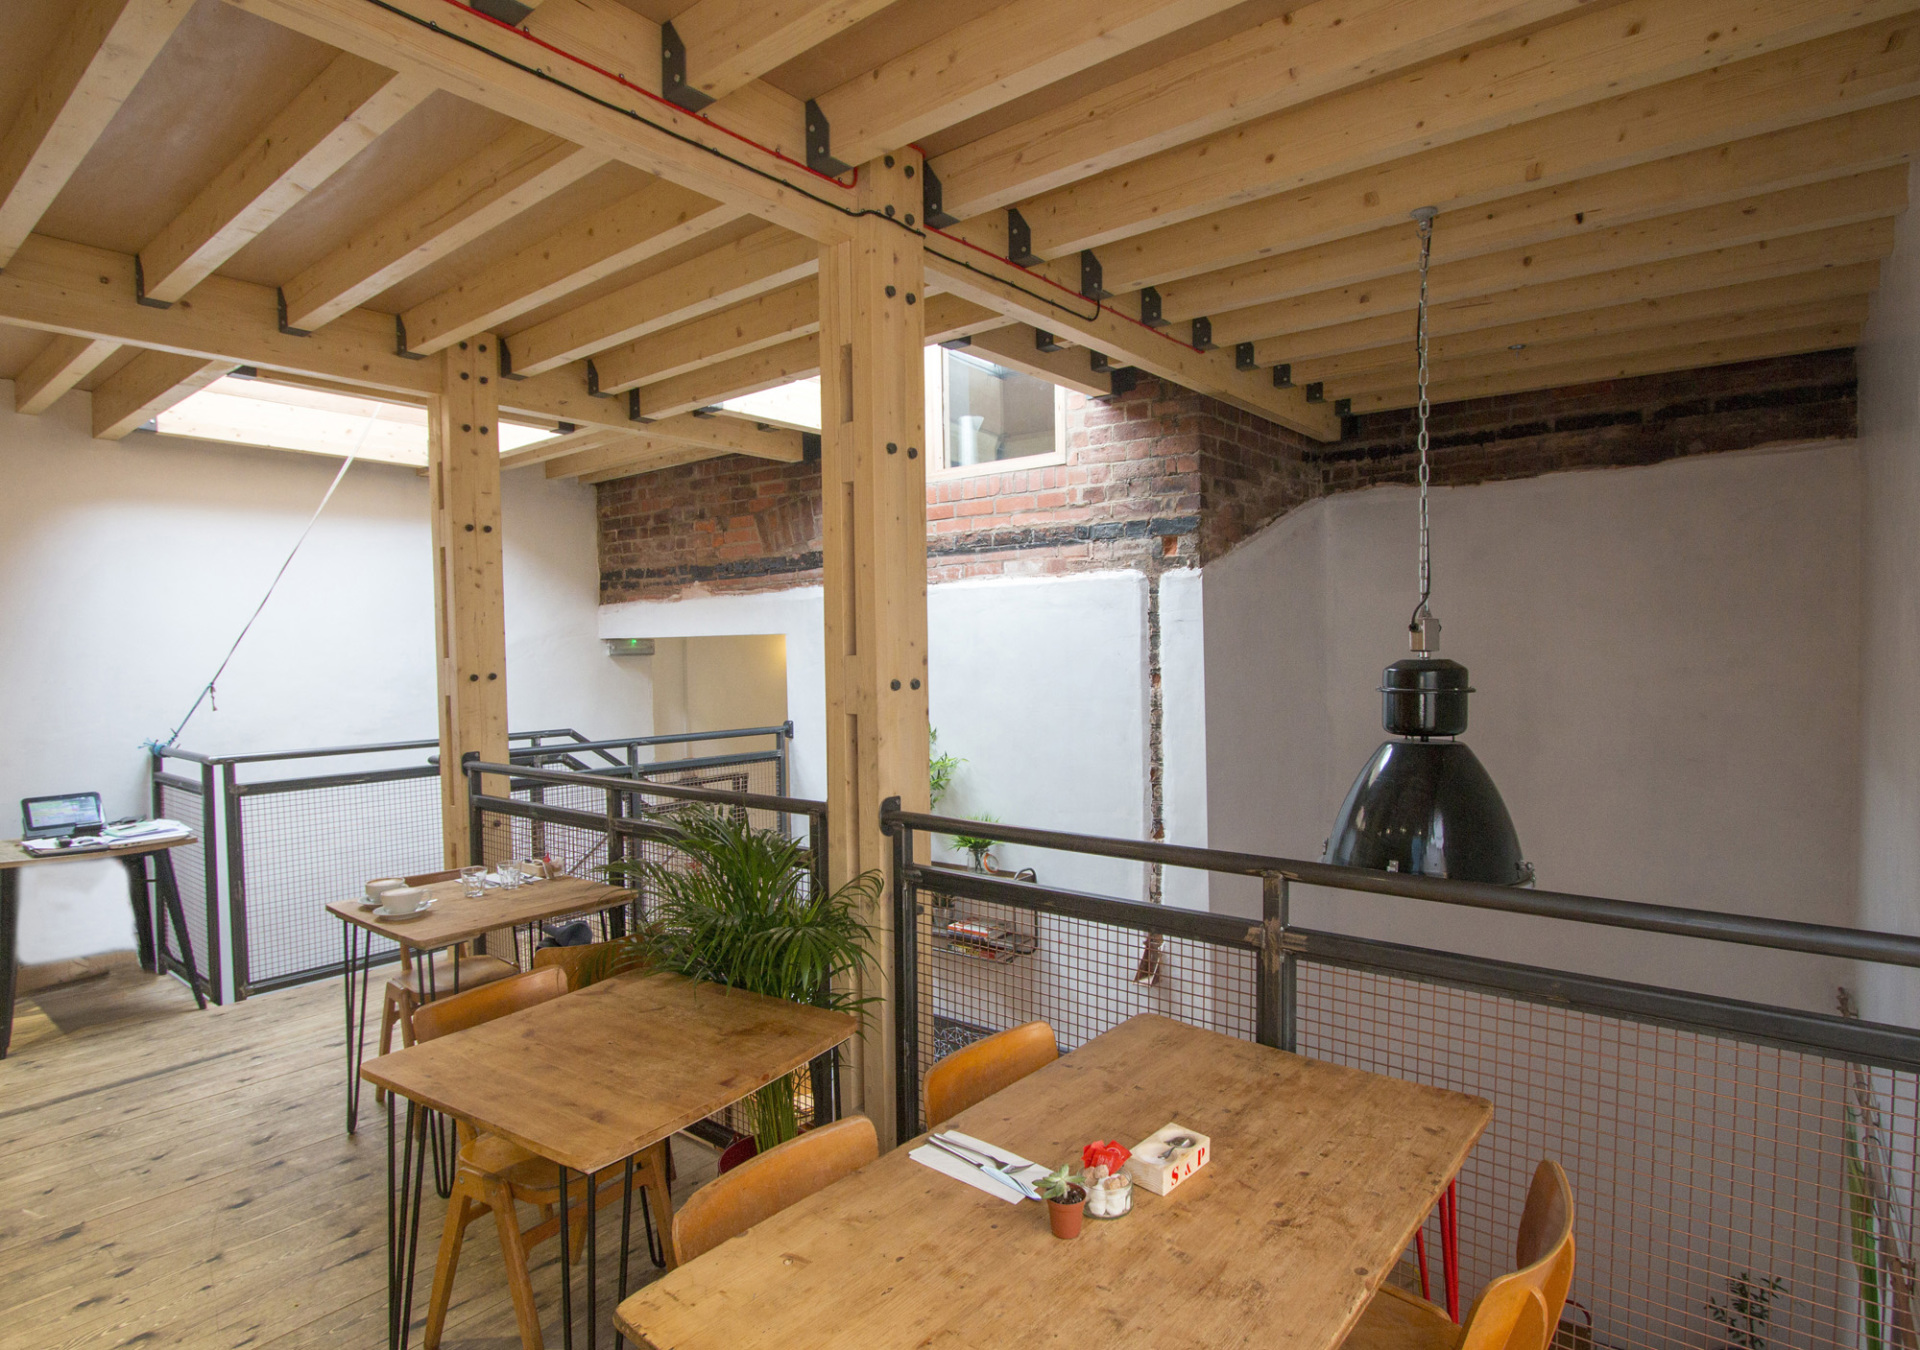 Restaurant Interior and Extension to Grade II Listed Building